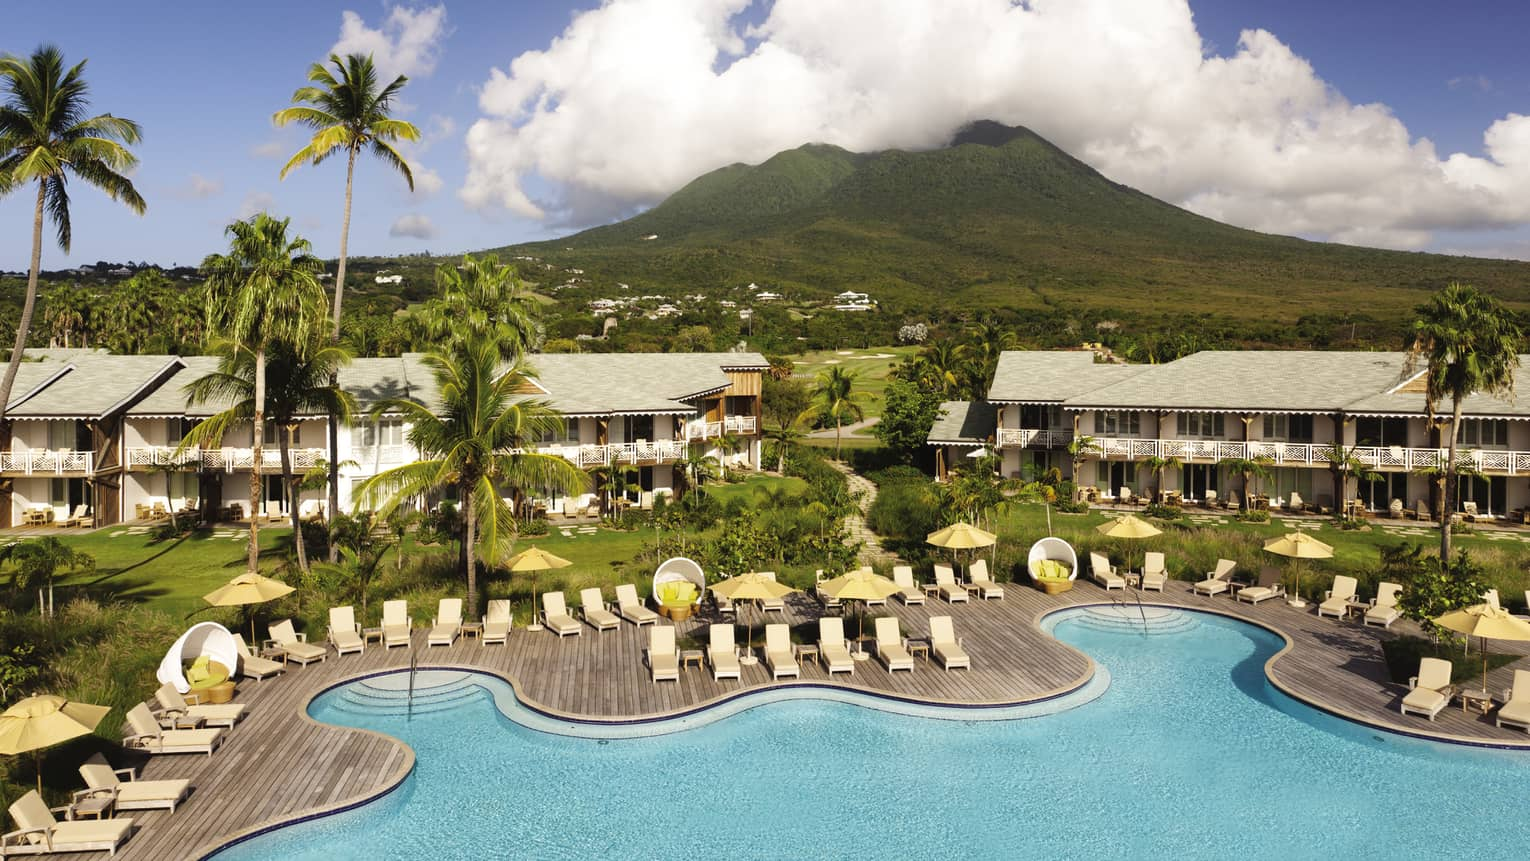 Aerial view of Four Seasons Resort Nevis white sand beach, buildings, green mountain